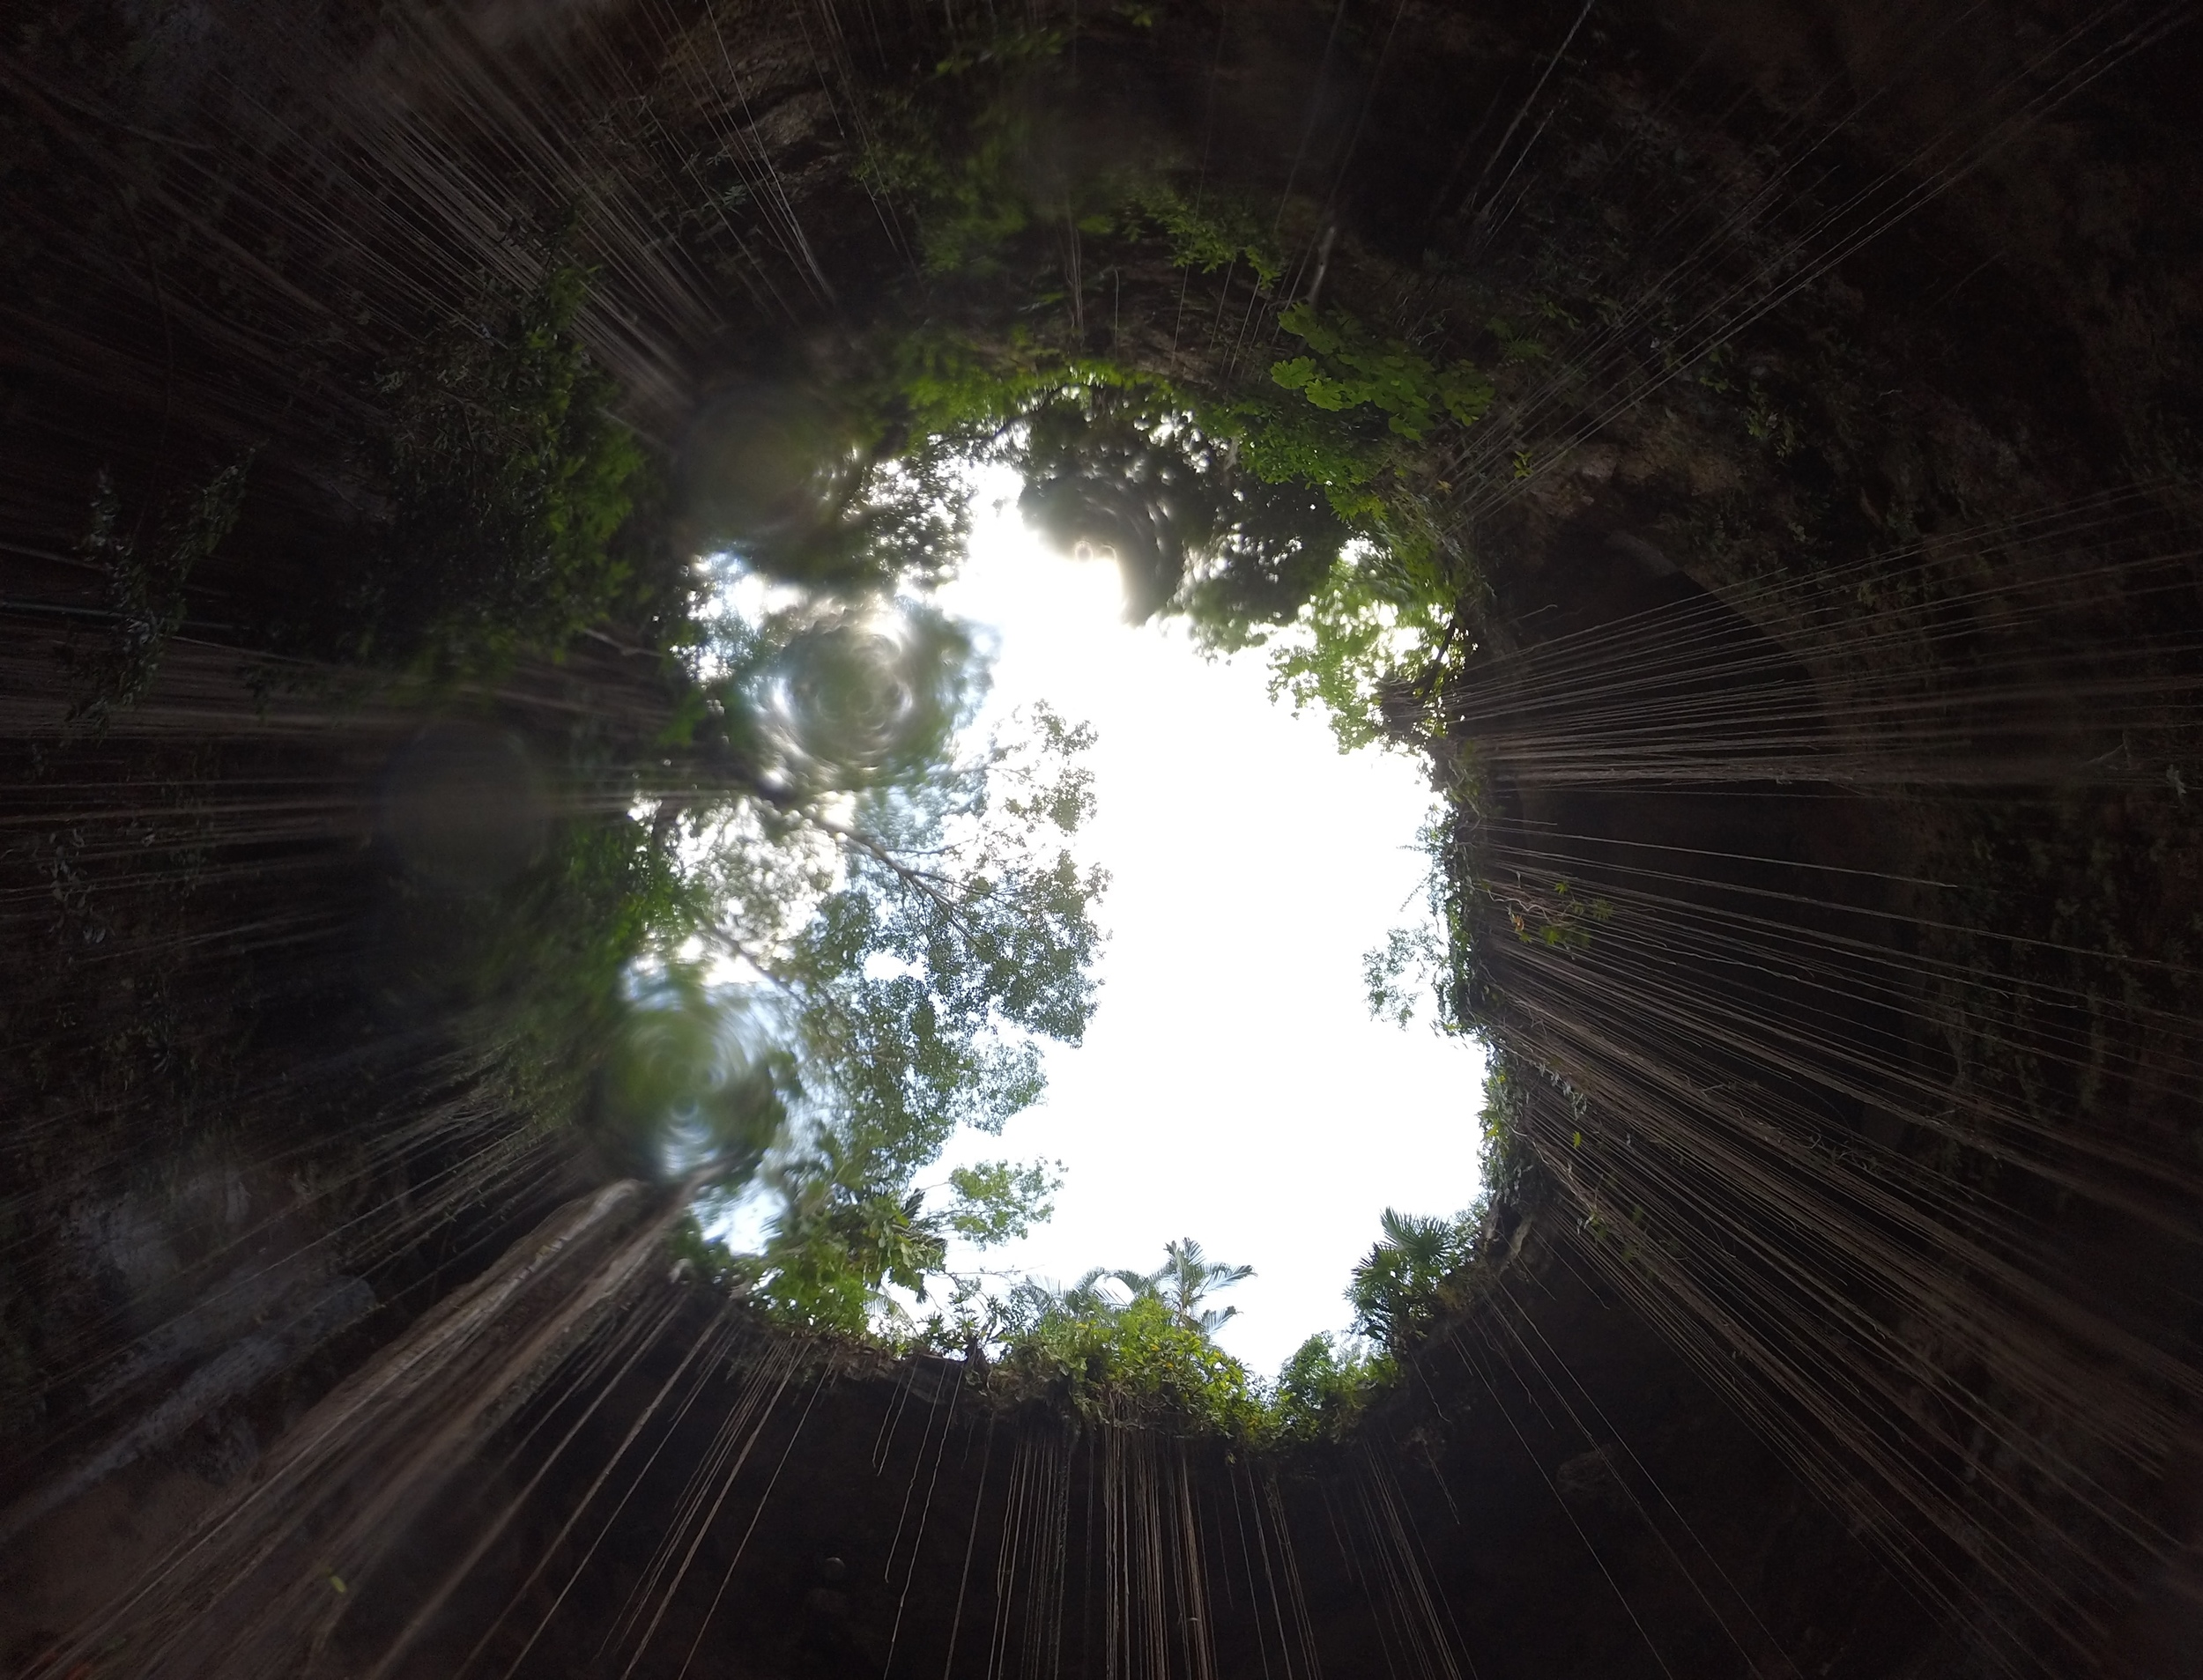 Looking up at the opening of Ik Kil cenote, with vines and cave roof.